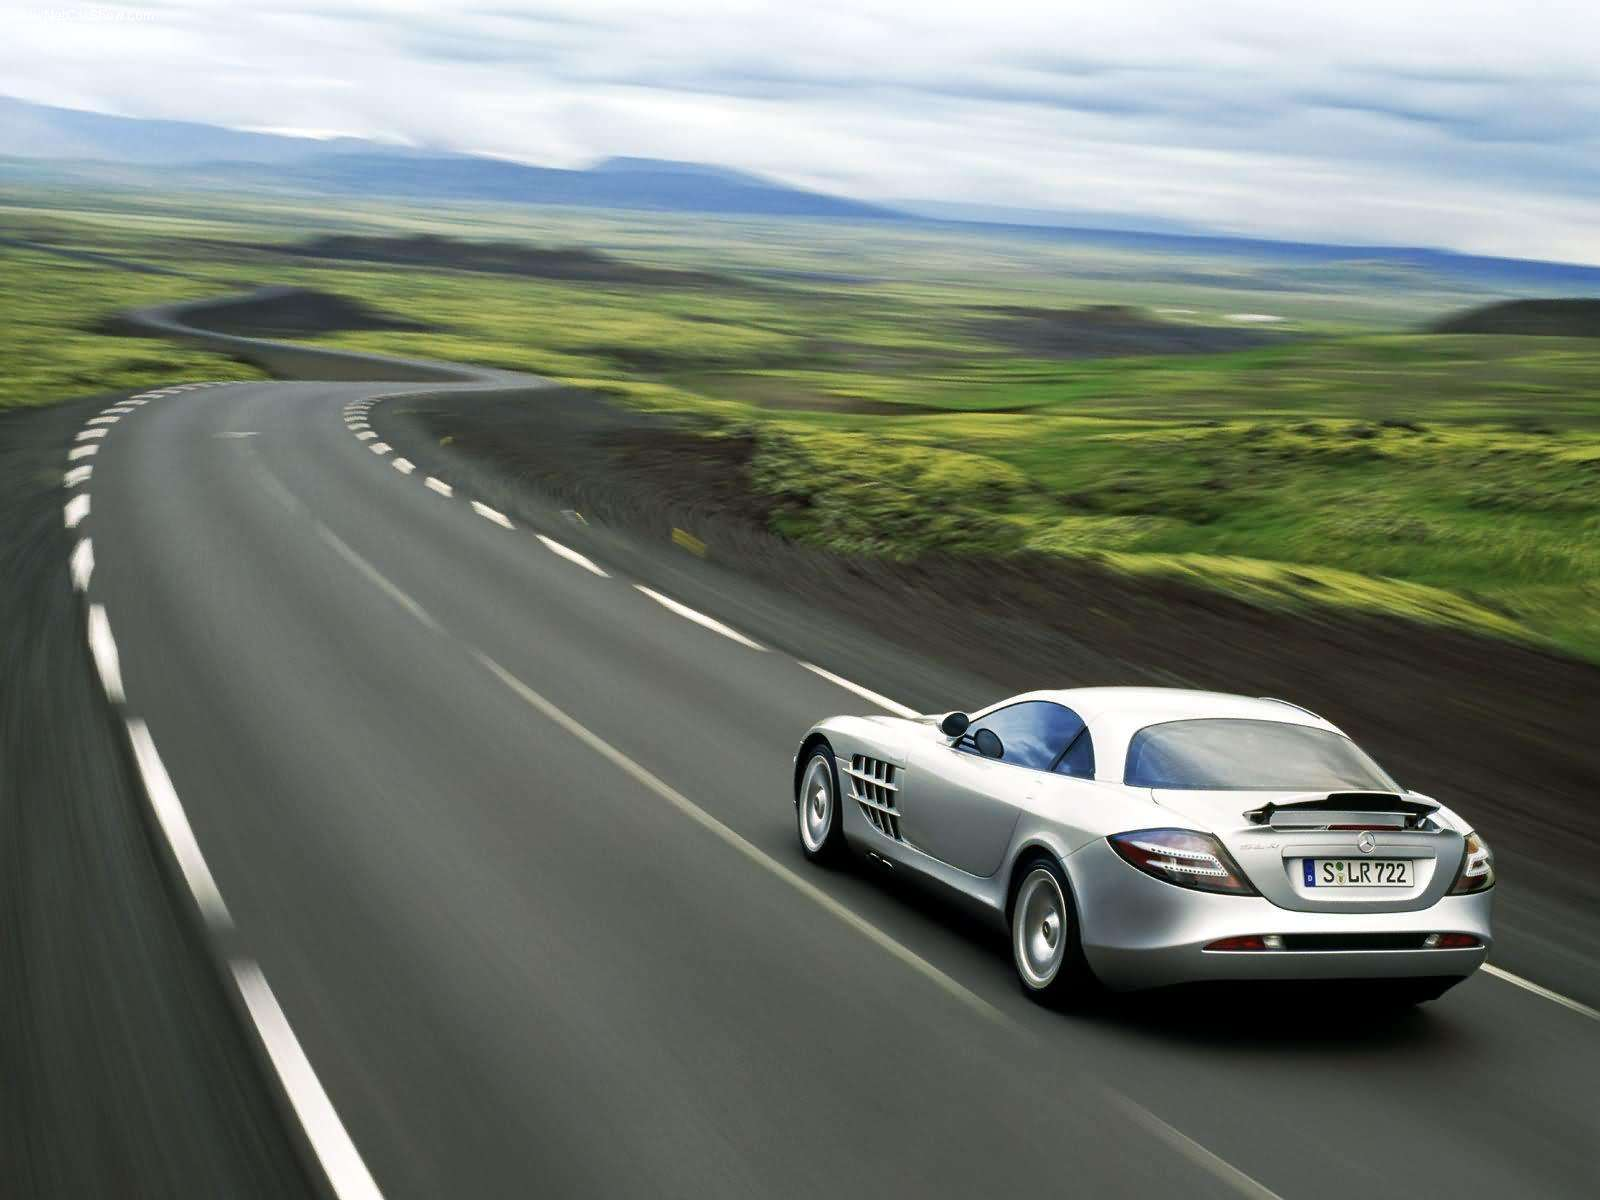 Mercedes Benz Wallpapers Group (83+)